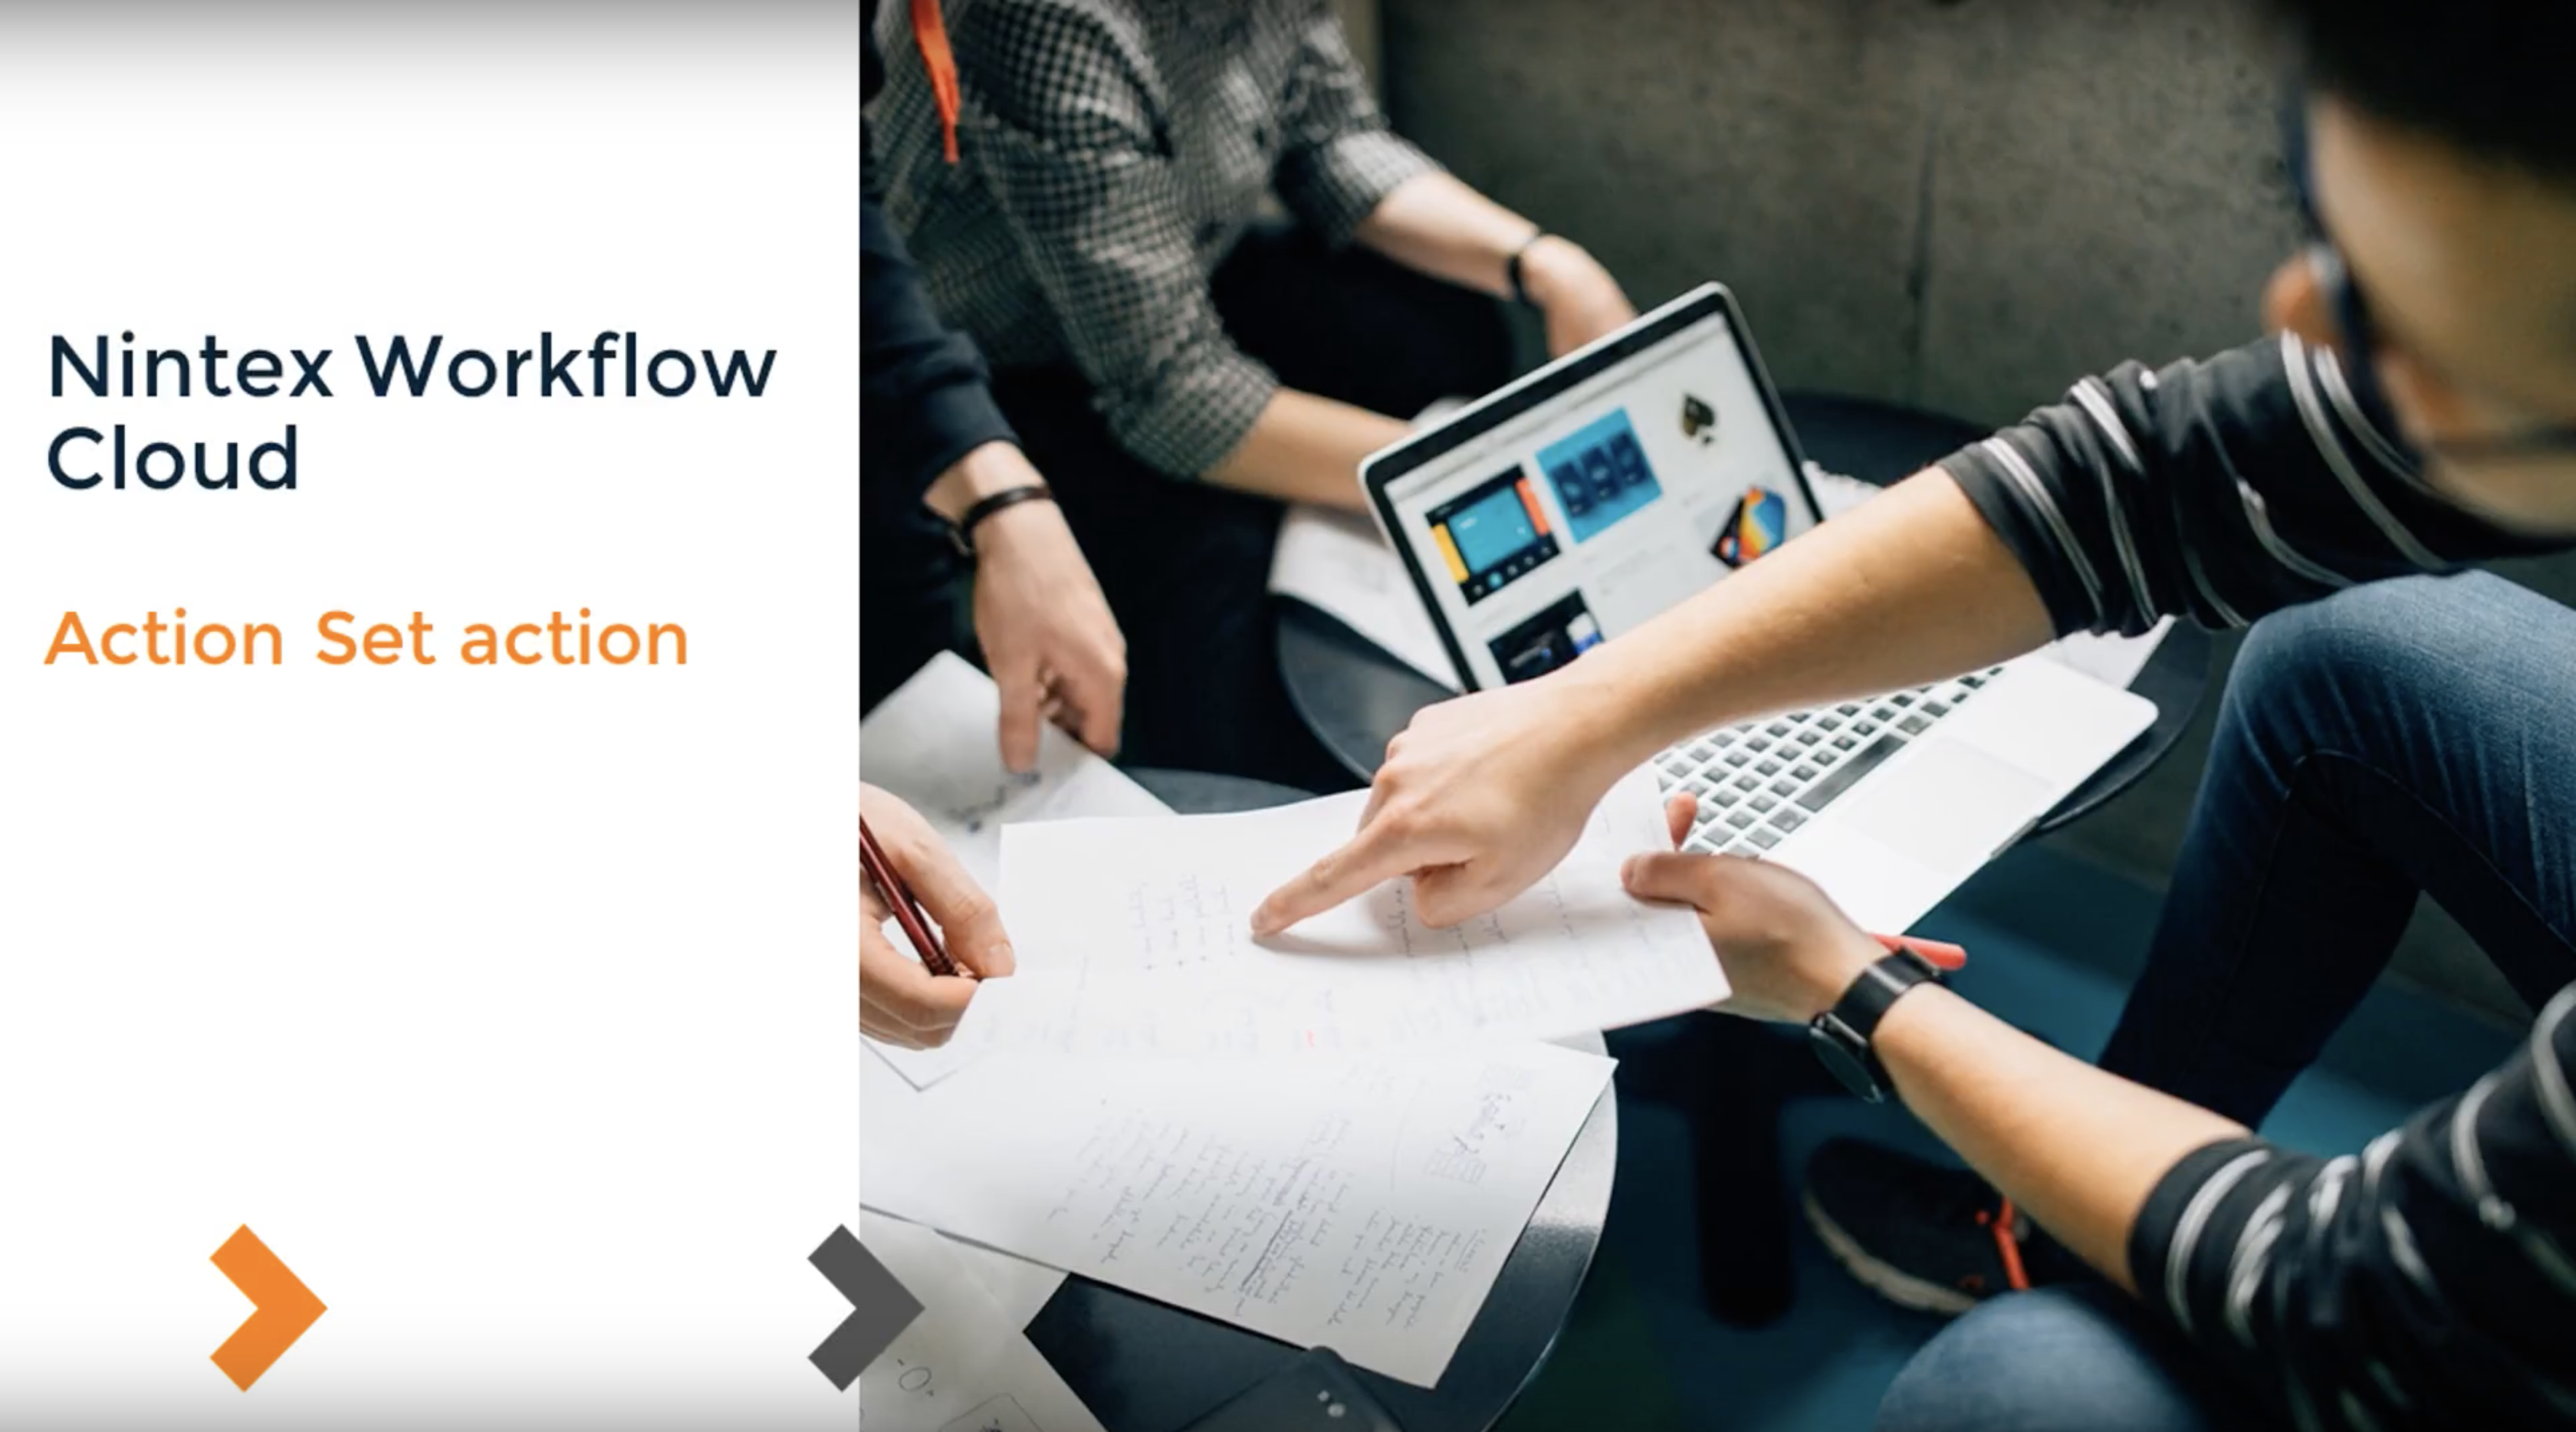 How to: Action Set in Nintex Workflow Cloud